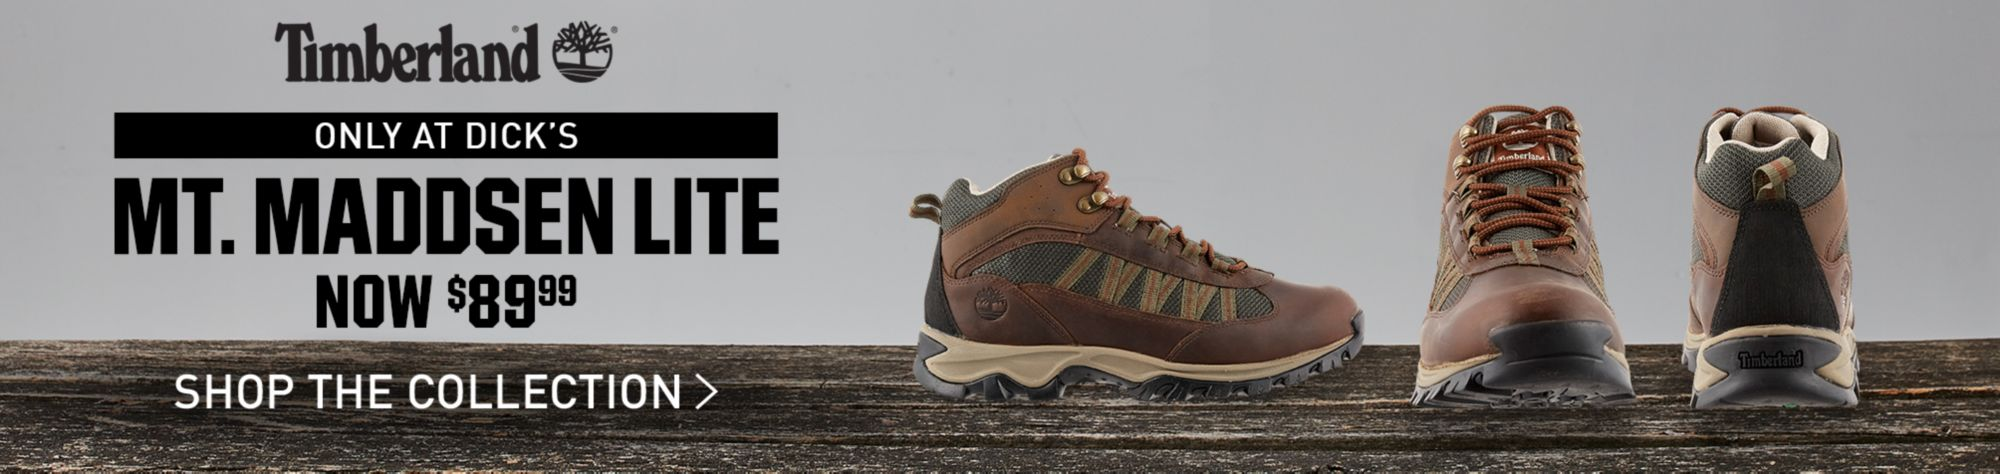 Mt. Maddsen Lite Now $89.99 - Shop The Collection